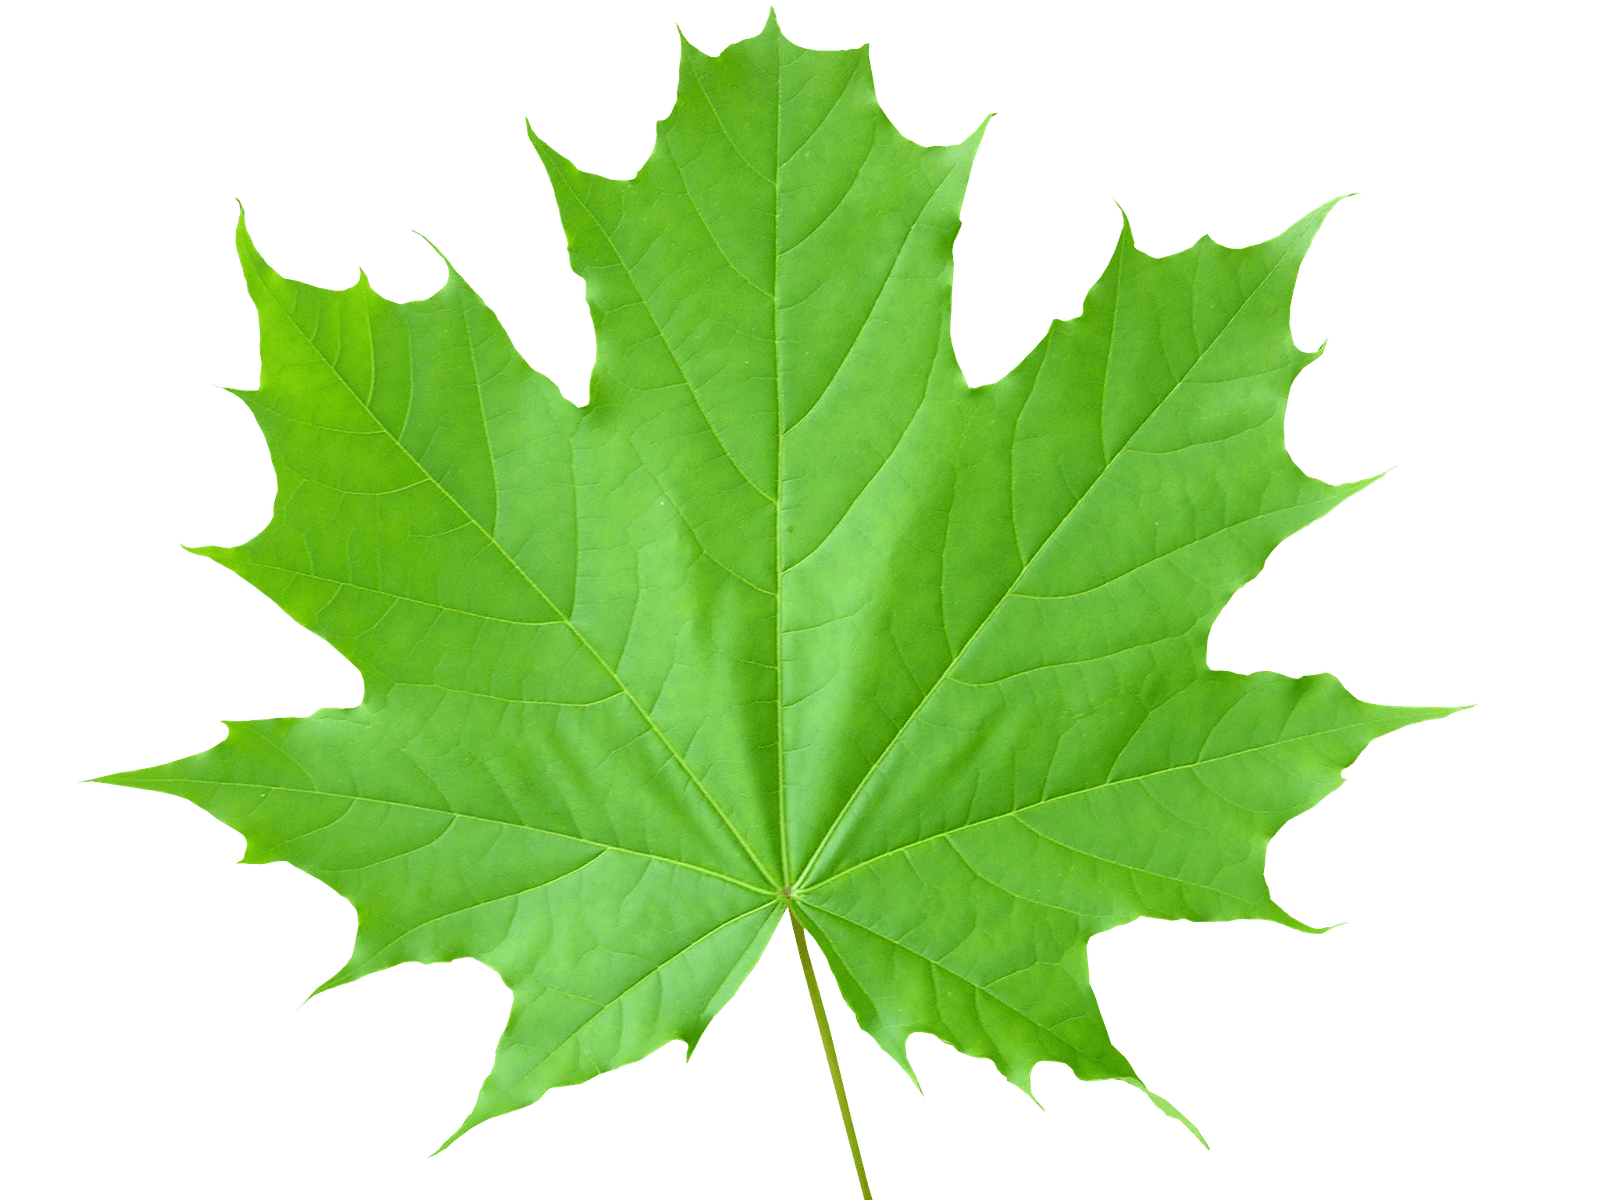 Green Leaves Png File - Leaves, Transparent background PNG HD thumbnail